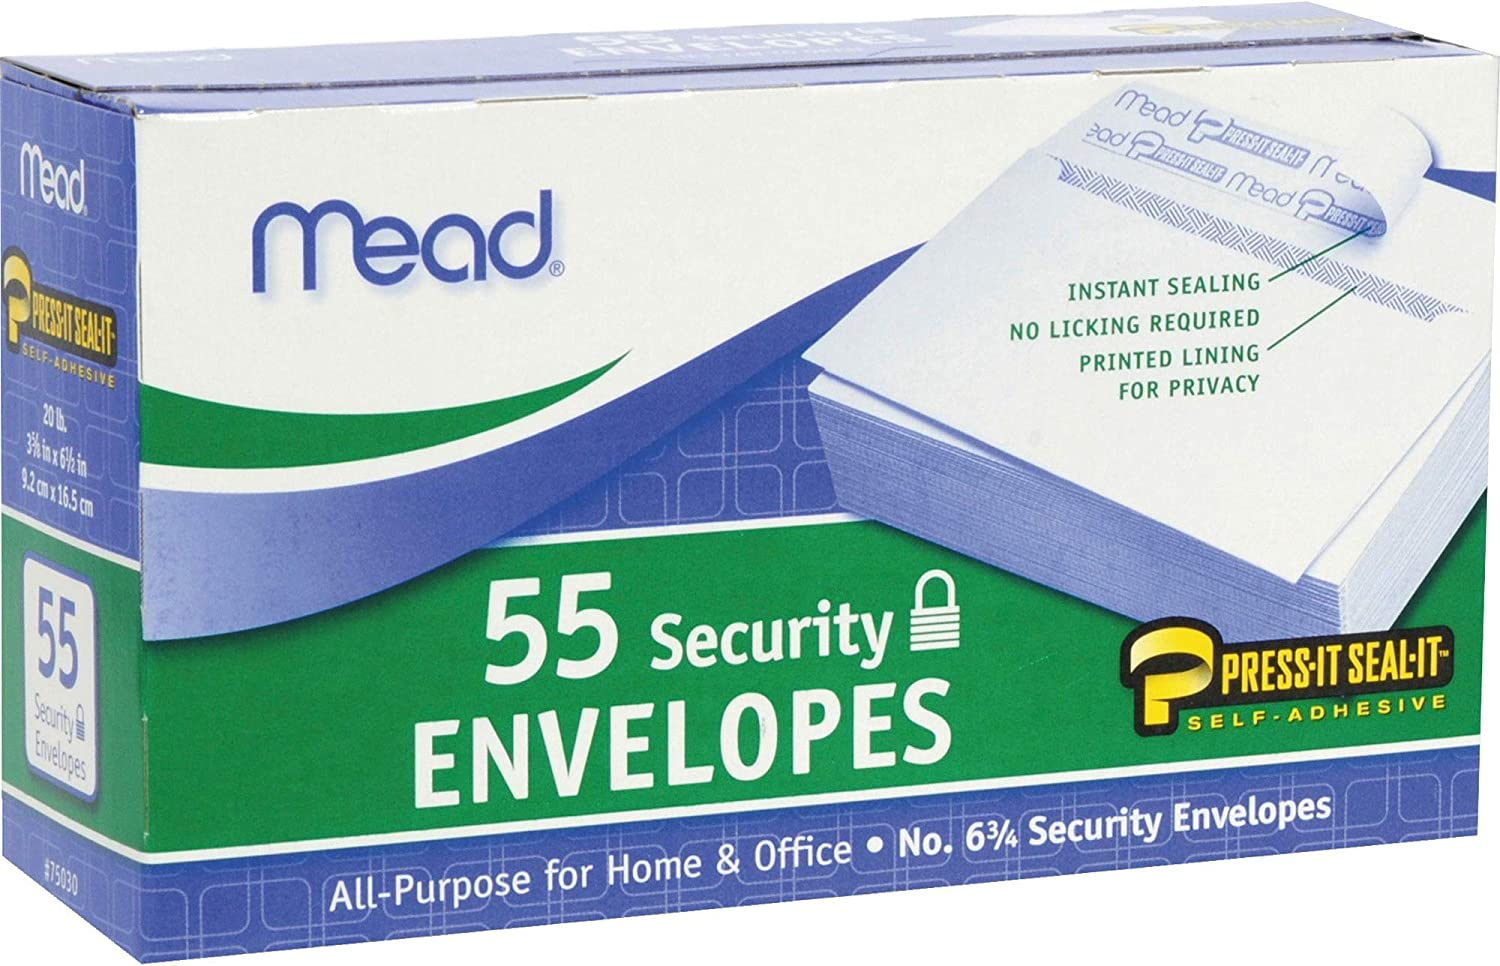 MEA75030 - Press-it Seal-it Security Envelope 55 security 3 8 5 Count Dealing full price reduction i